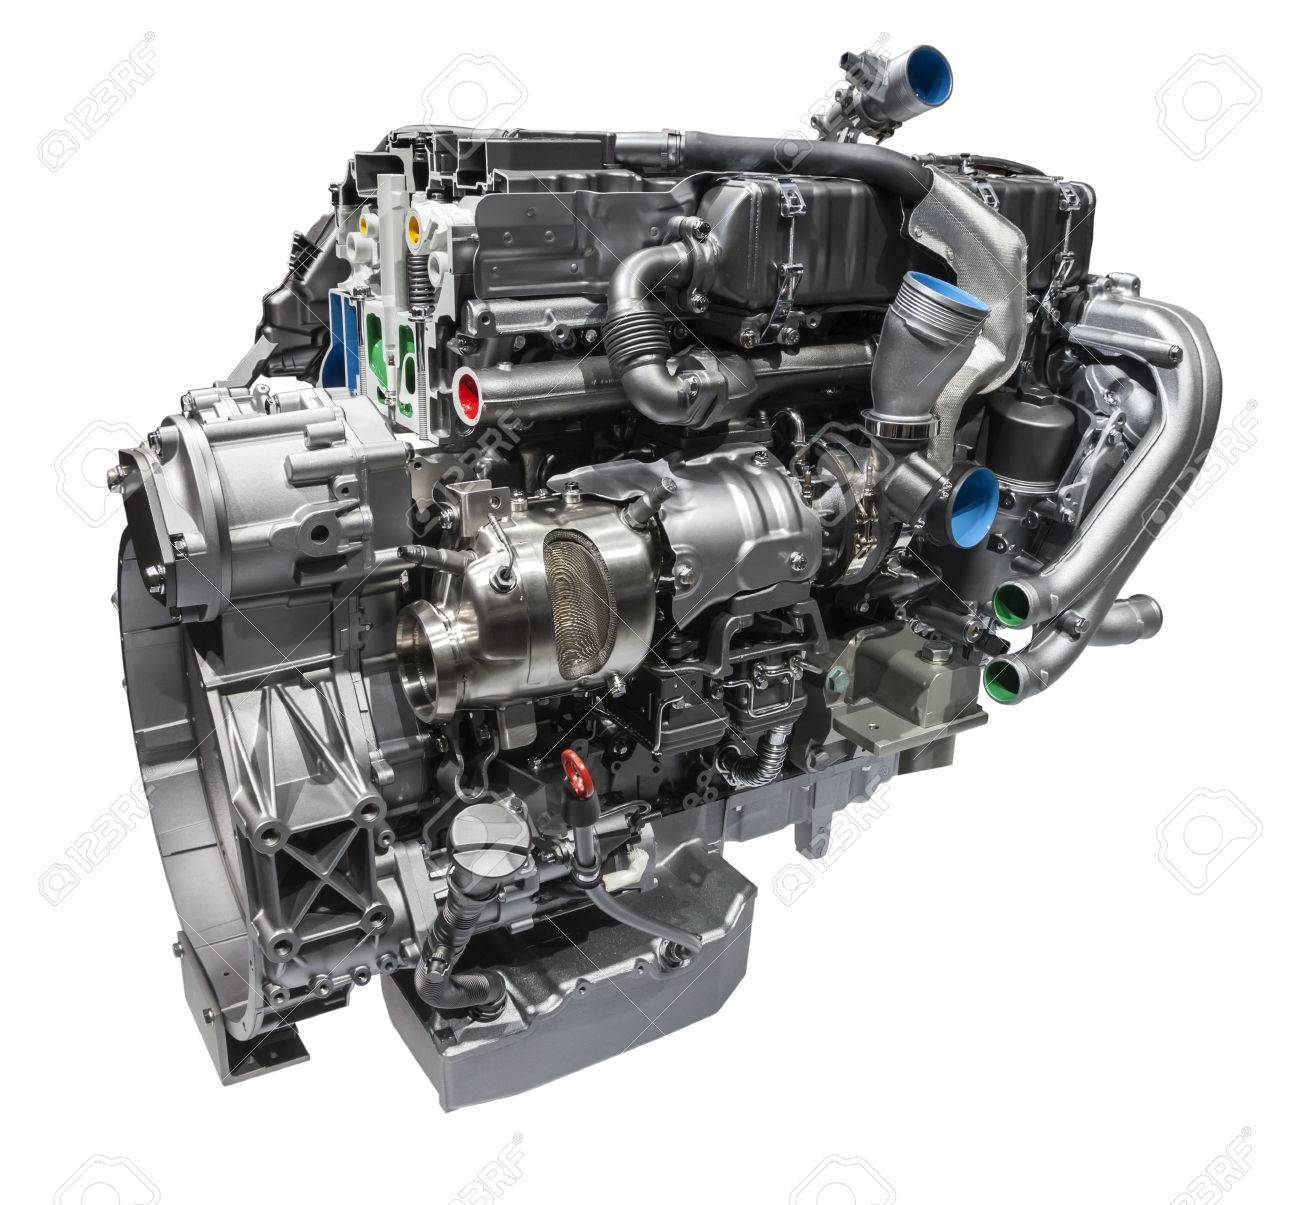 Modern truck diesel engine isolated on white background Stock Photo - 32364233